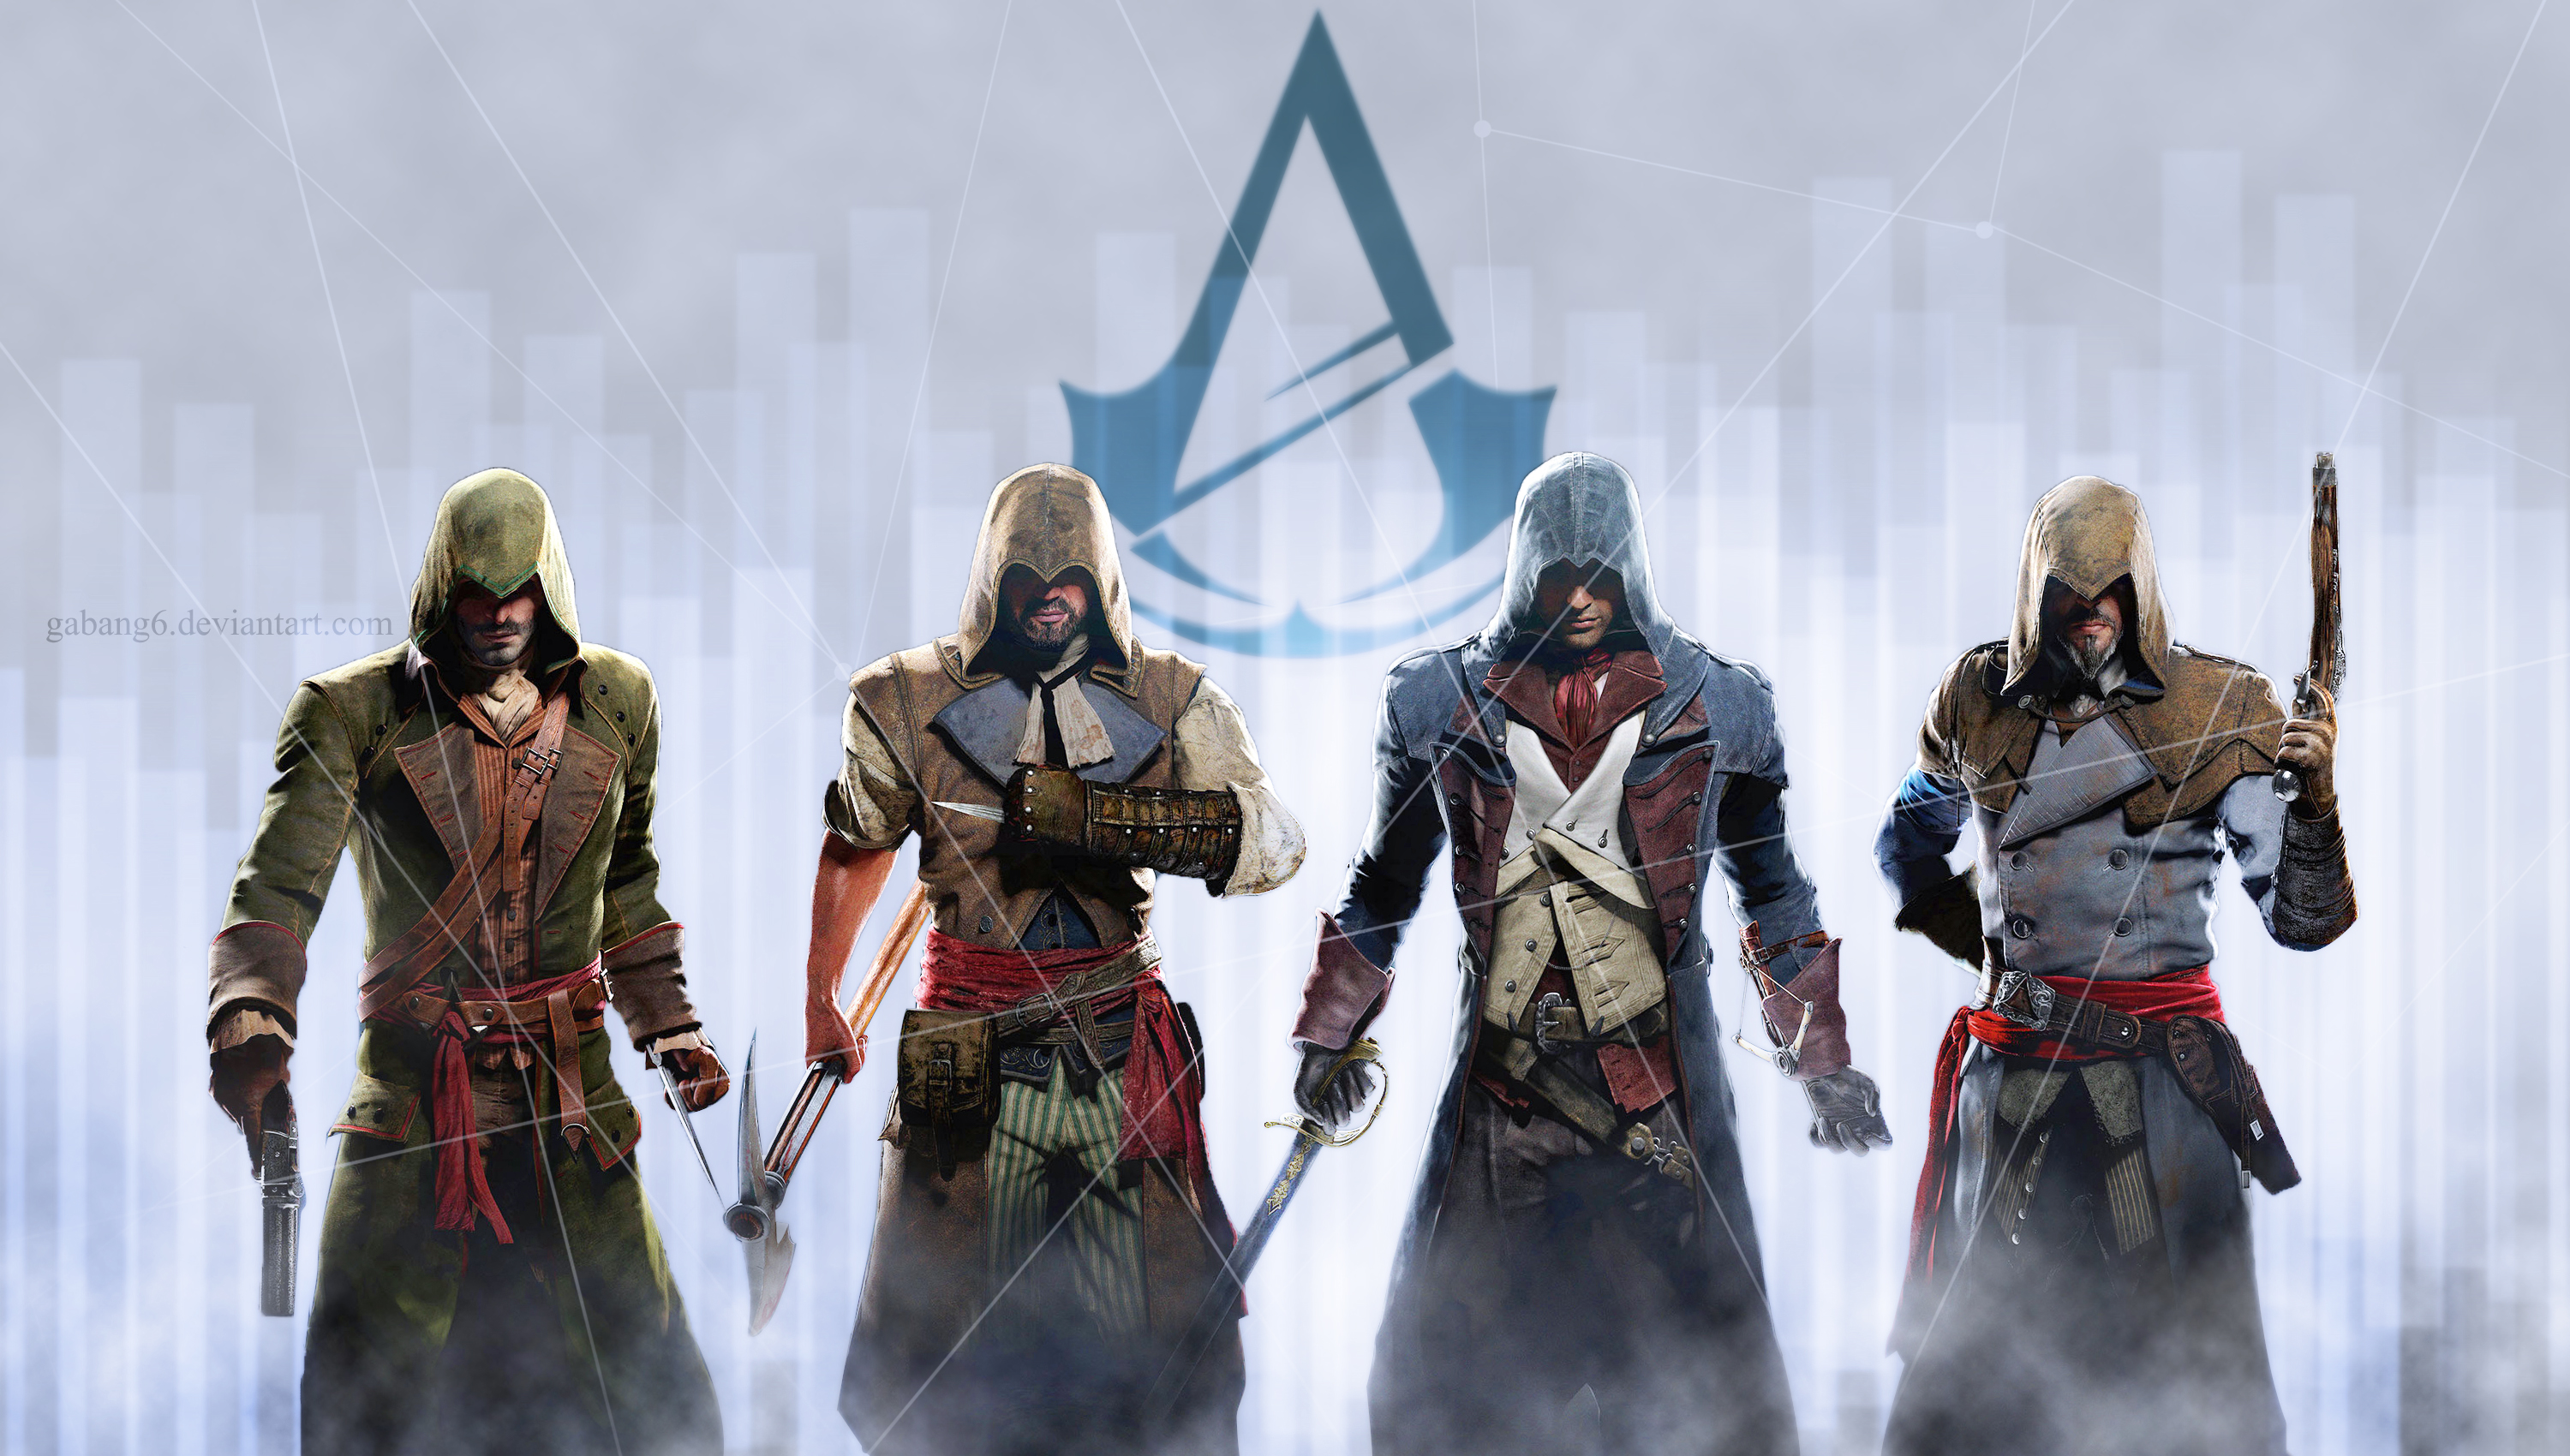 Assassin S Creed Unity Wallpaper By Gabang6 On Deviantart